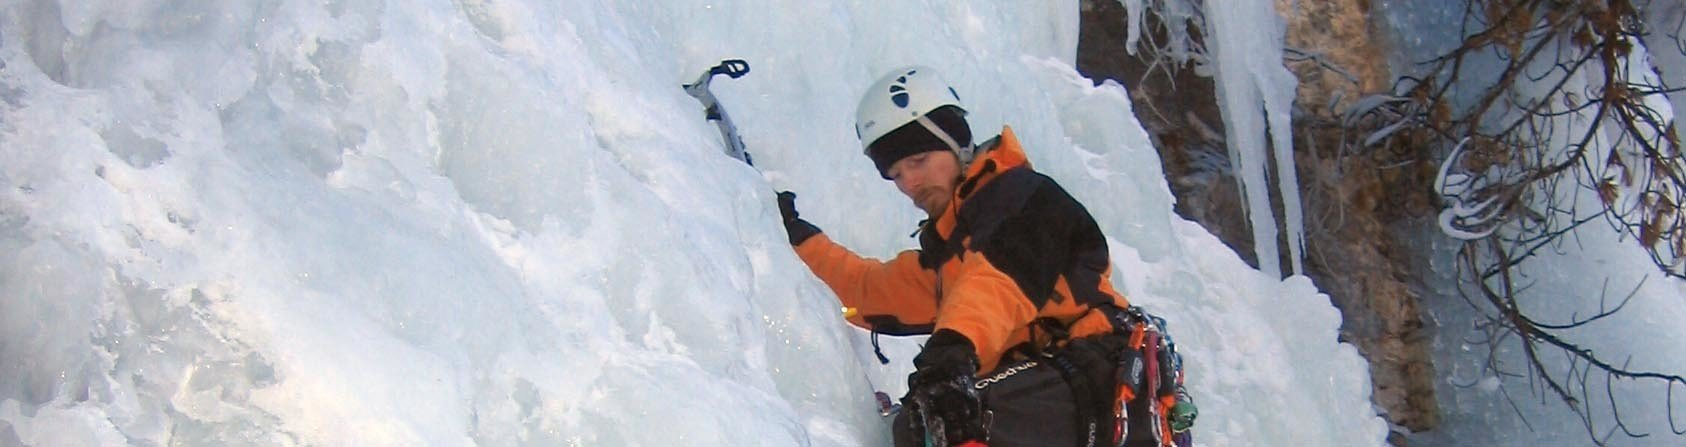 alps expedition 2017 ice_climbing_norway_alps_course